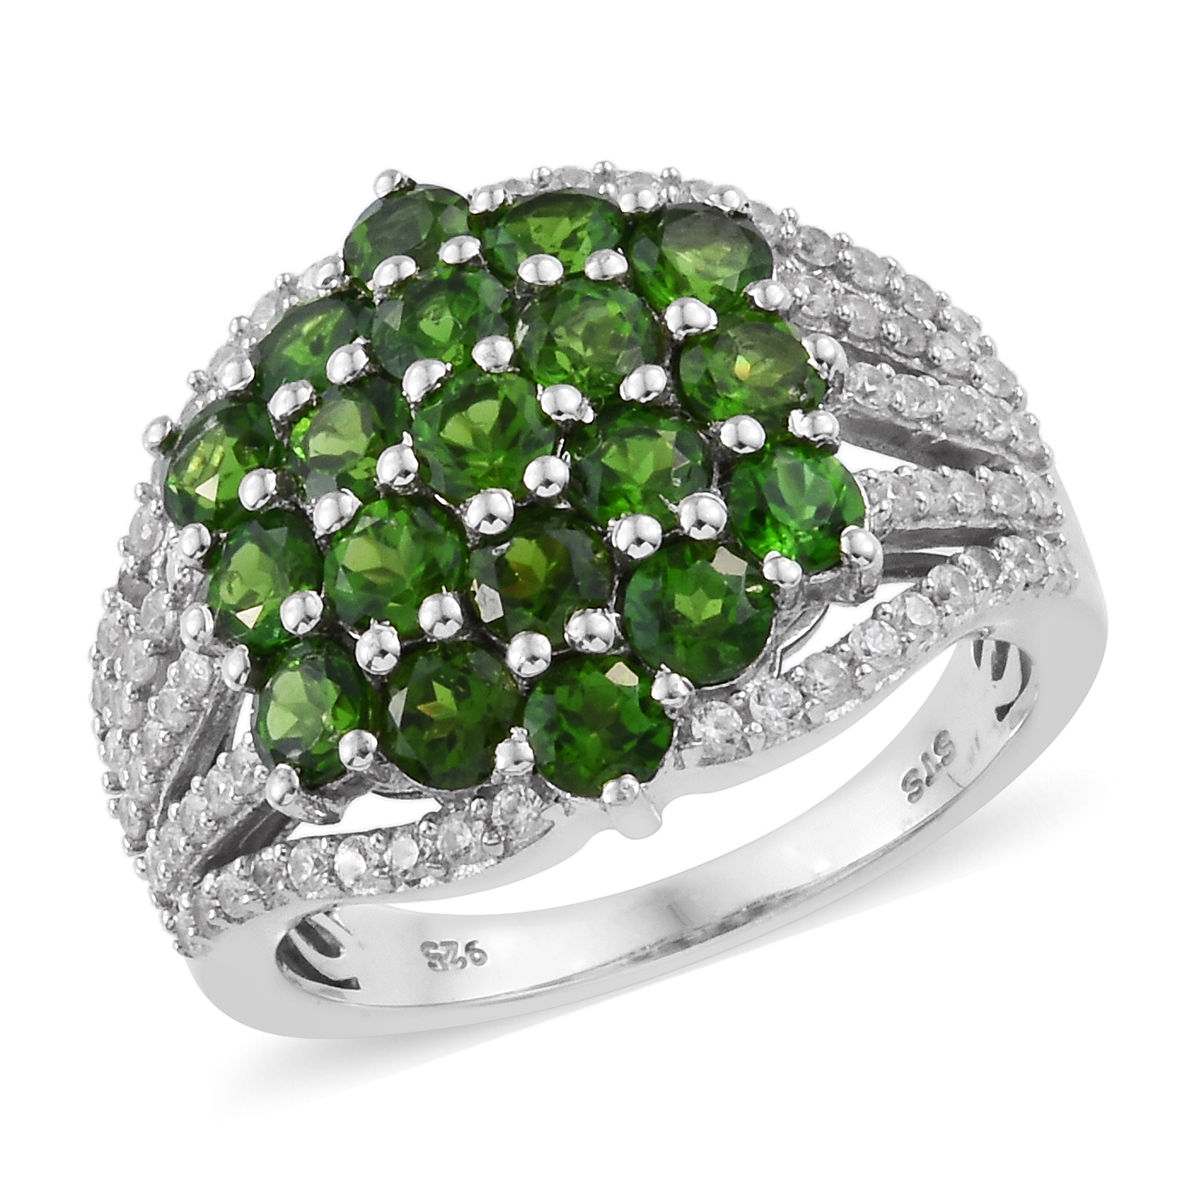 Russian Diopside, Cambodian Zircon Ring in Platinum Over Sterling Silver (Size 10.0) 4.65 ctw